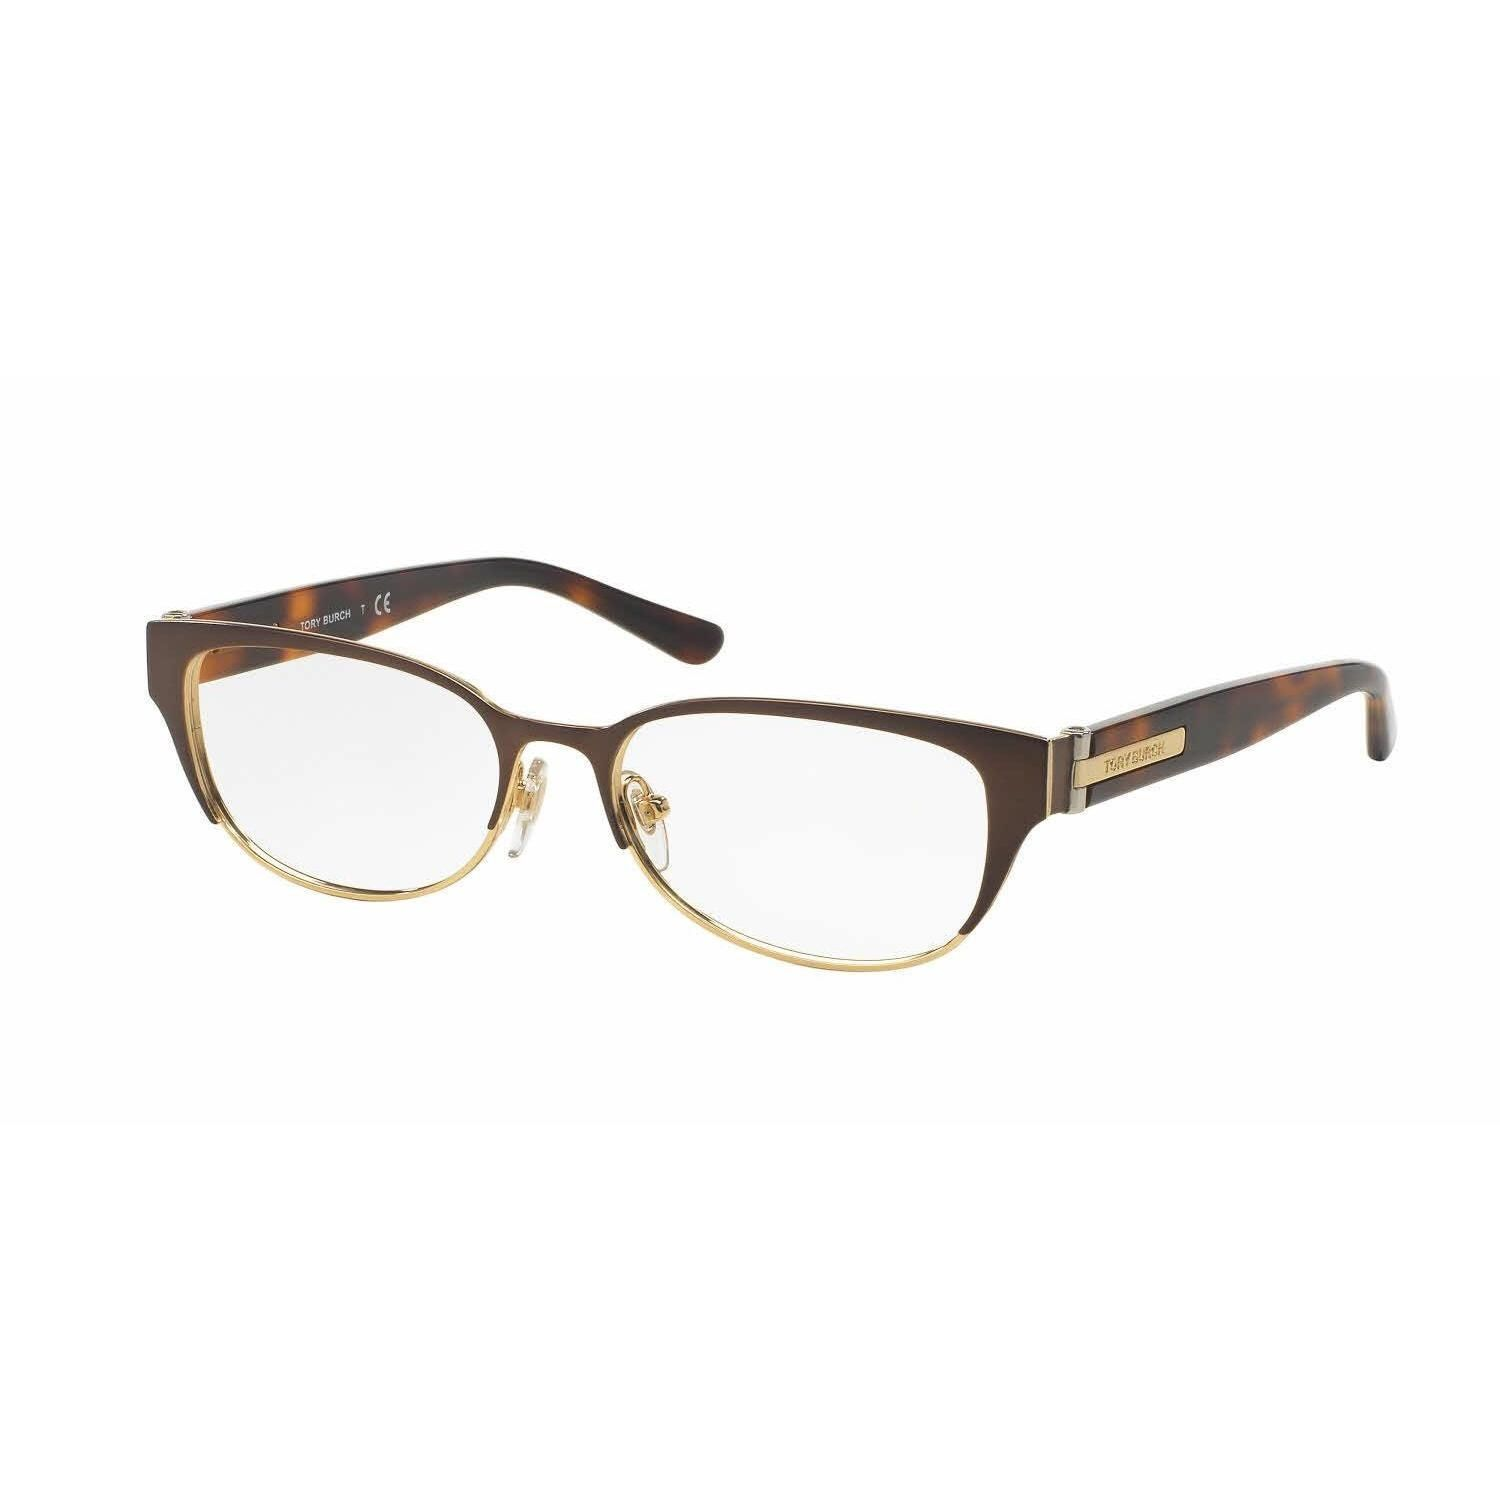 8c4c93e9cd Tory Burch Womens TY1045 3128 Bronze Copper Cat Eye Eyeglasses ...